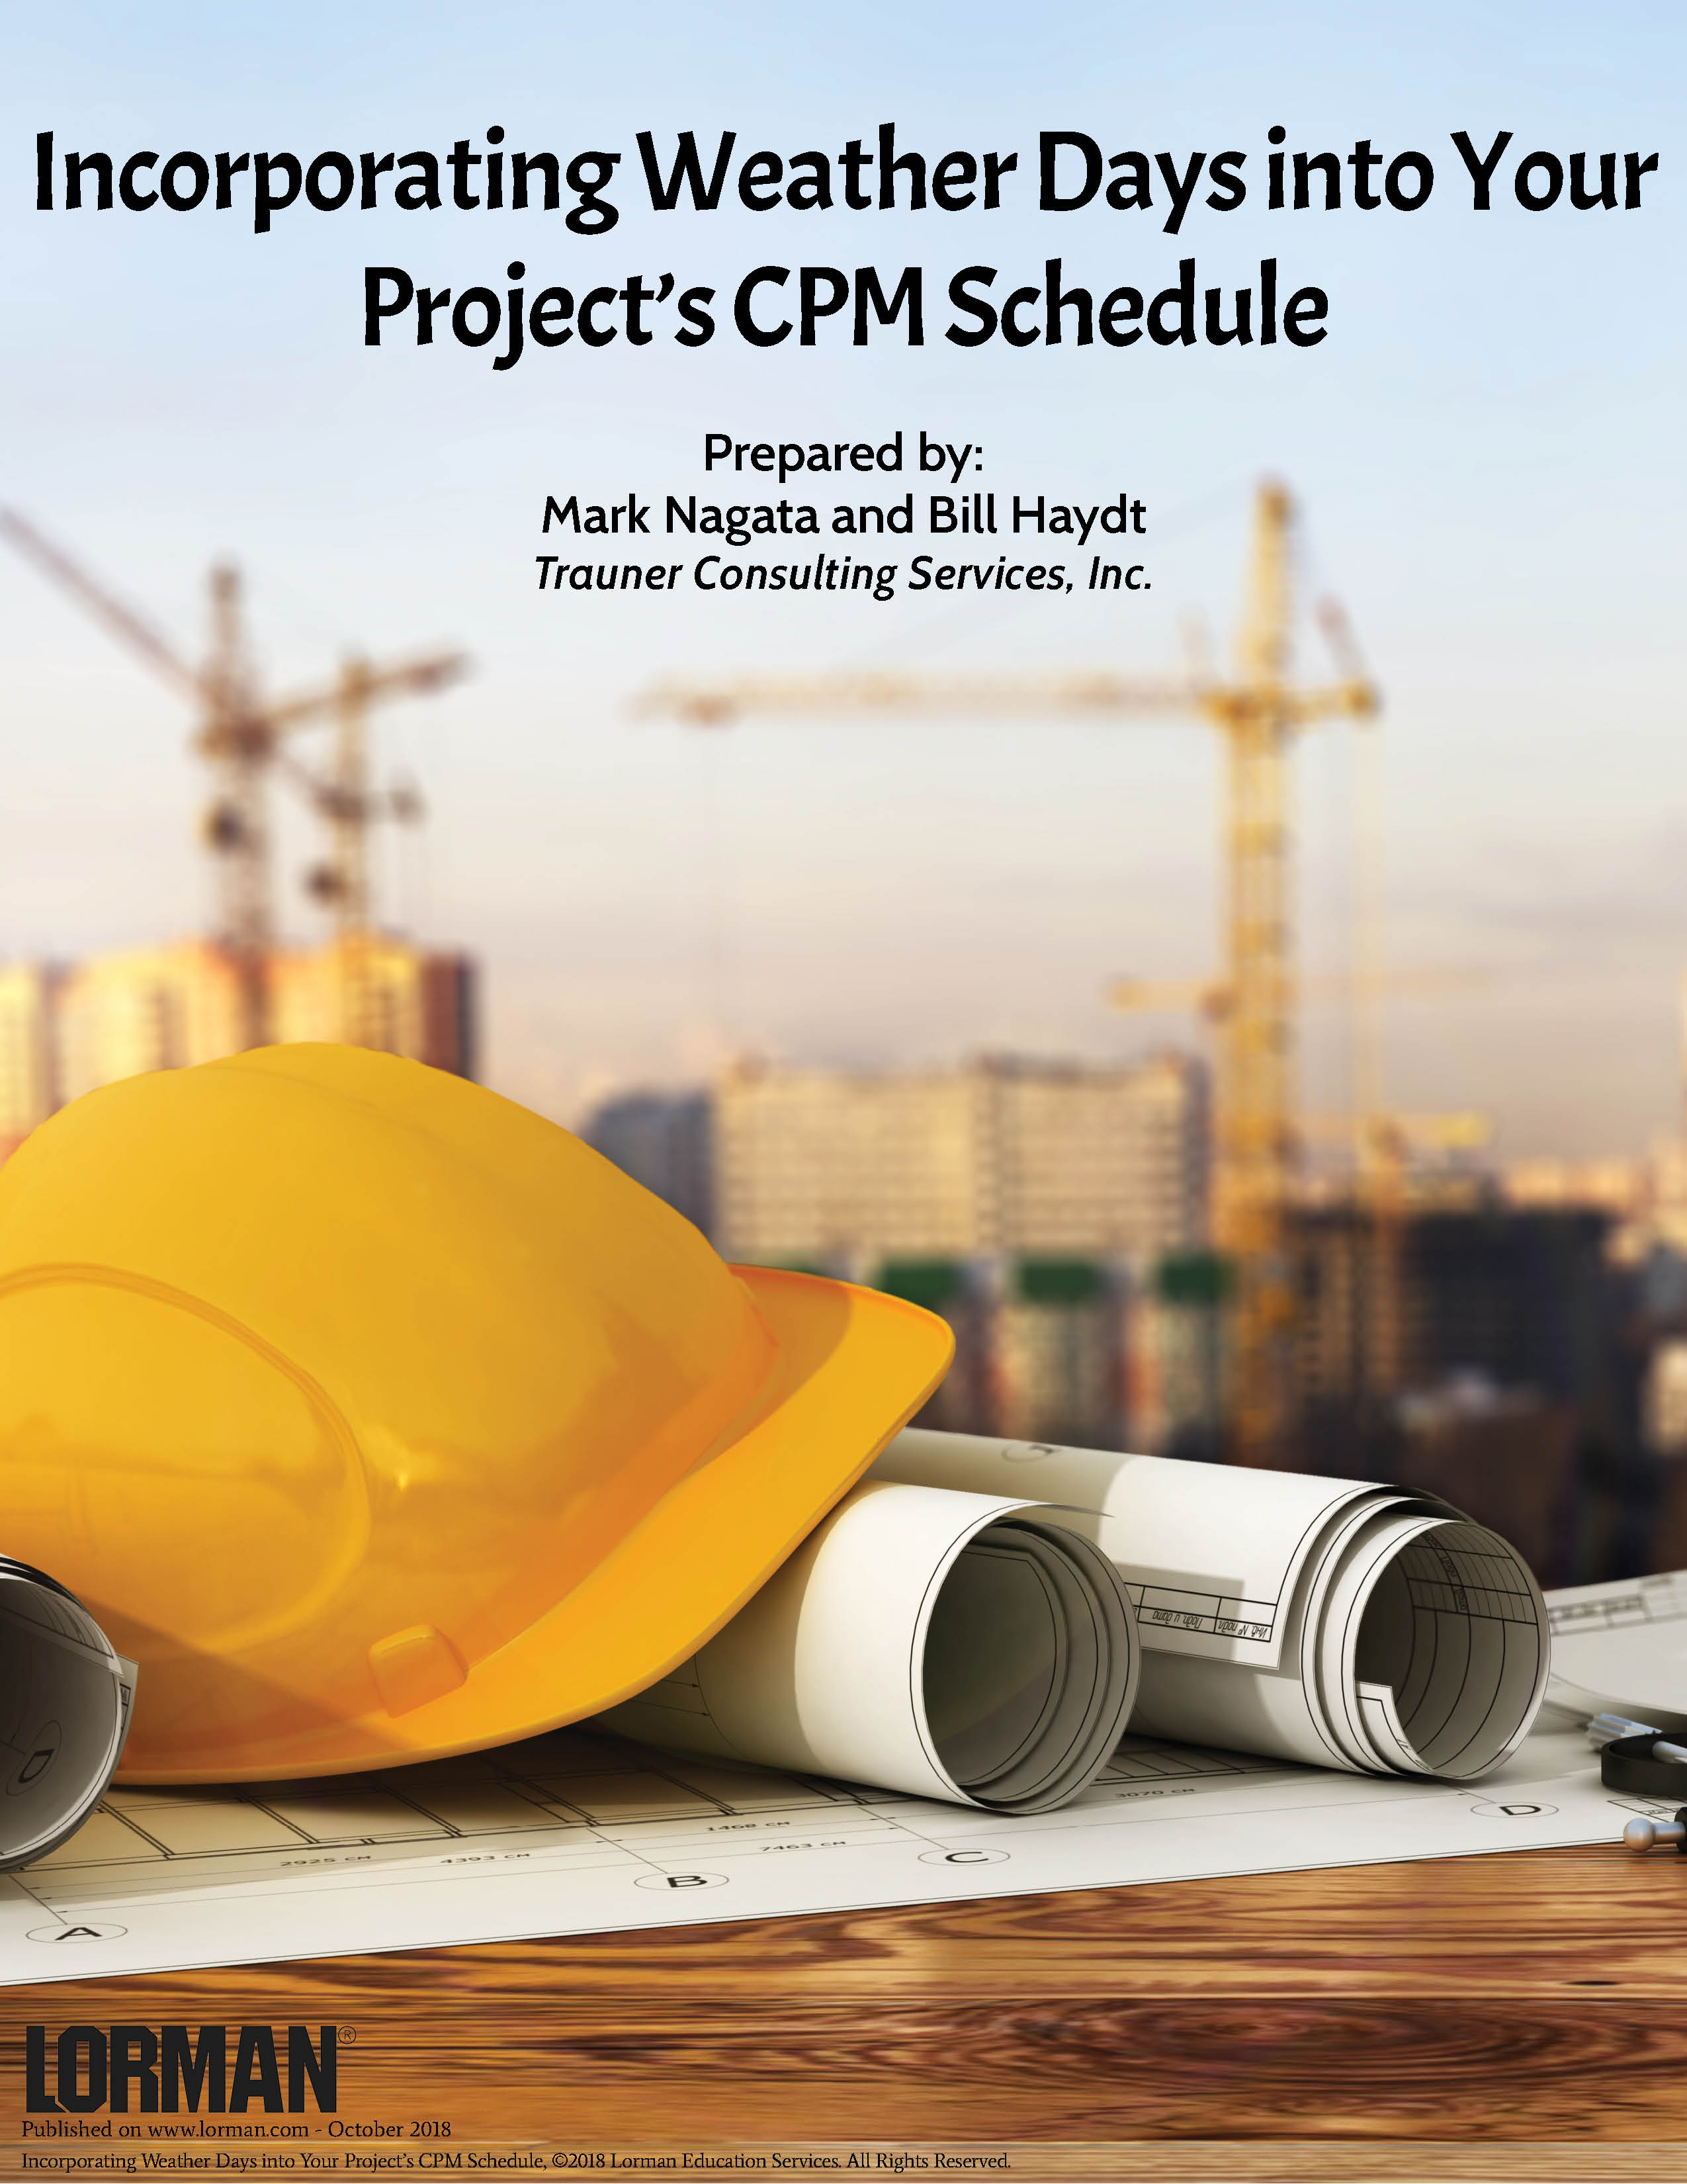 Incorporating Weather Days into Your Project's CPM Schedule